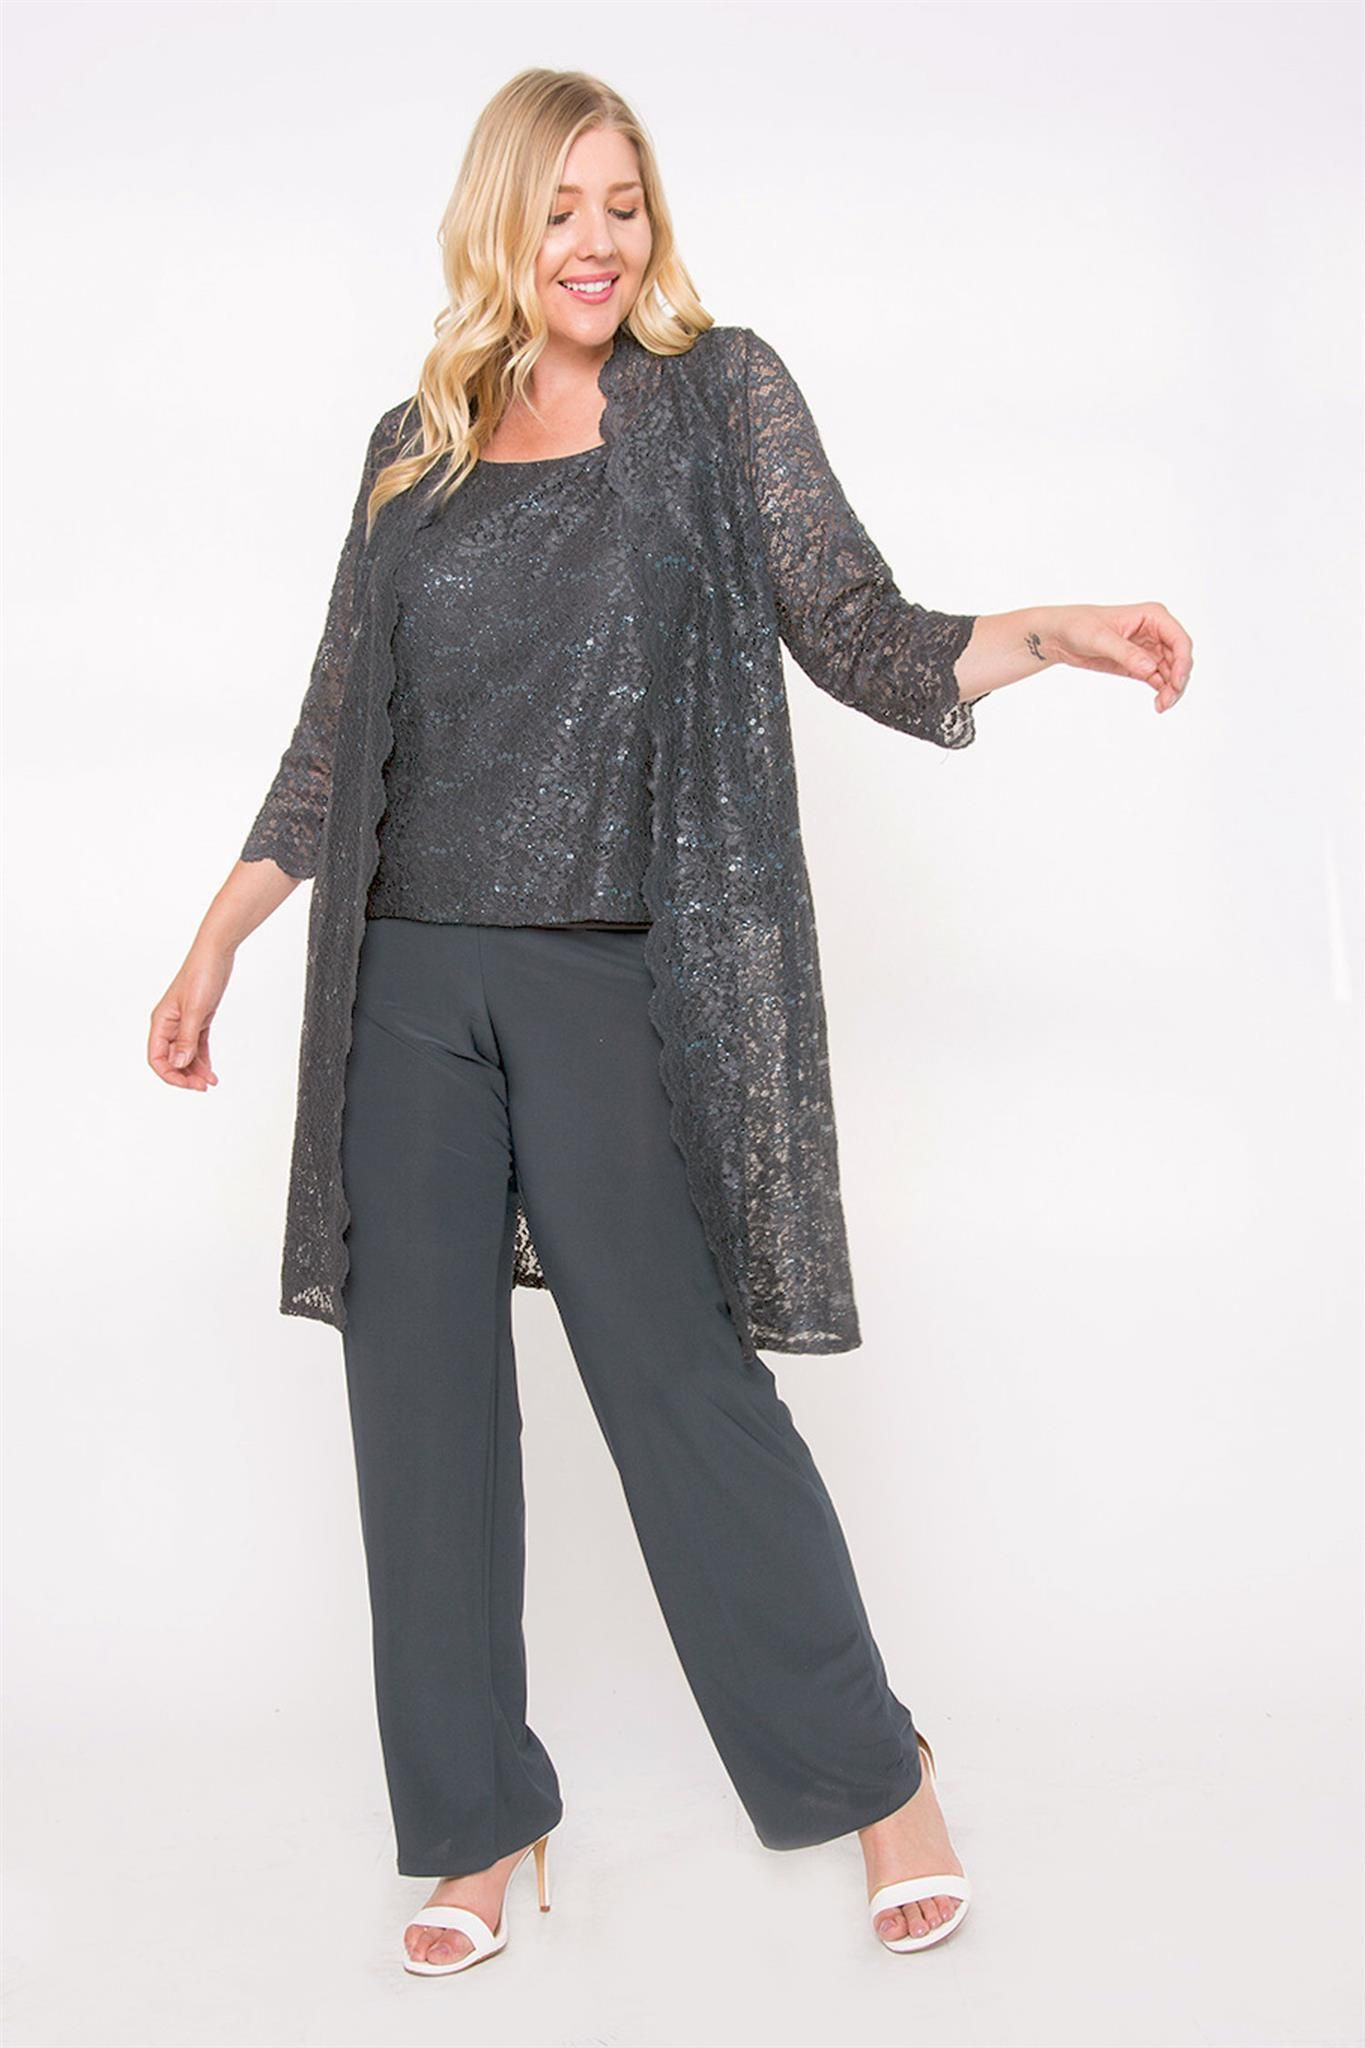 33d4d89163c R M Richards Mother of the Bride Pant Suit Made in USA in 2019 ...